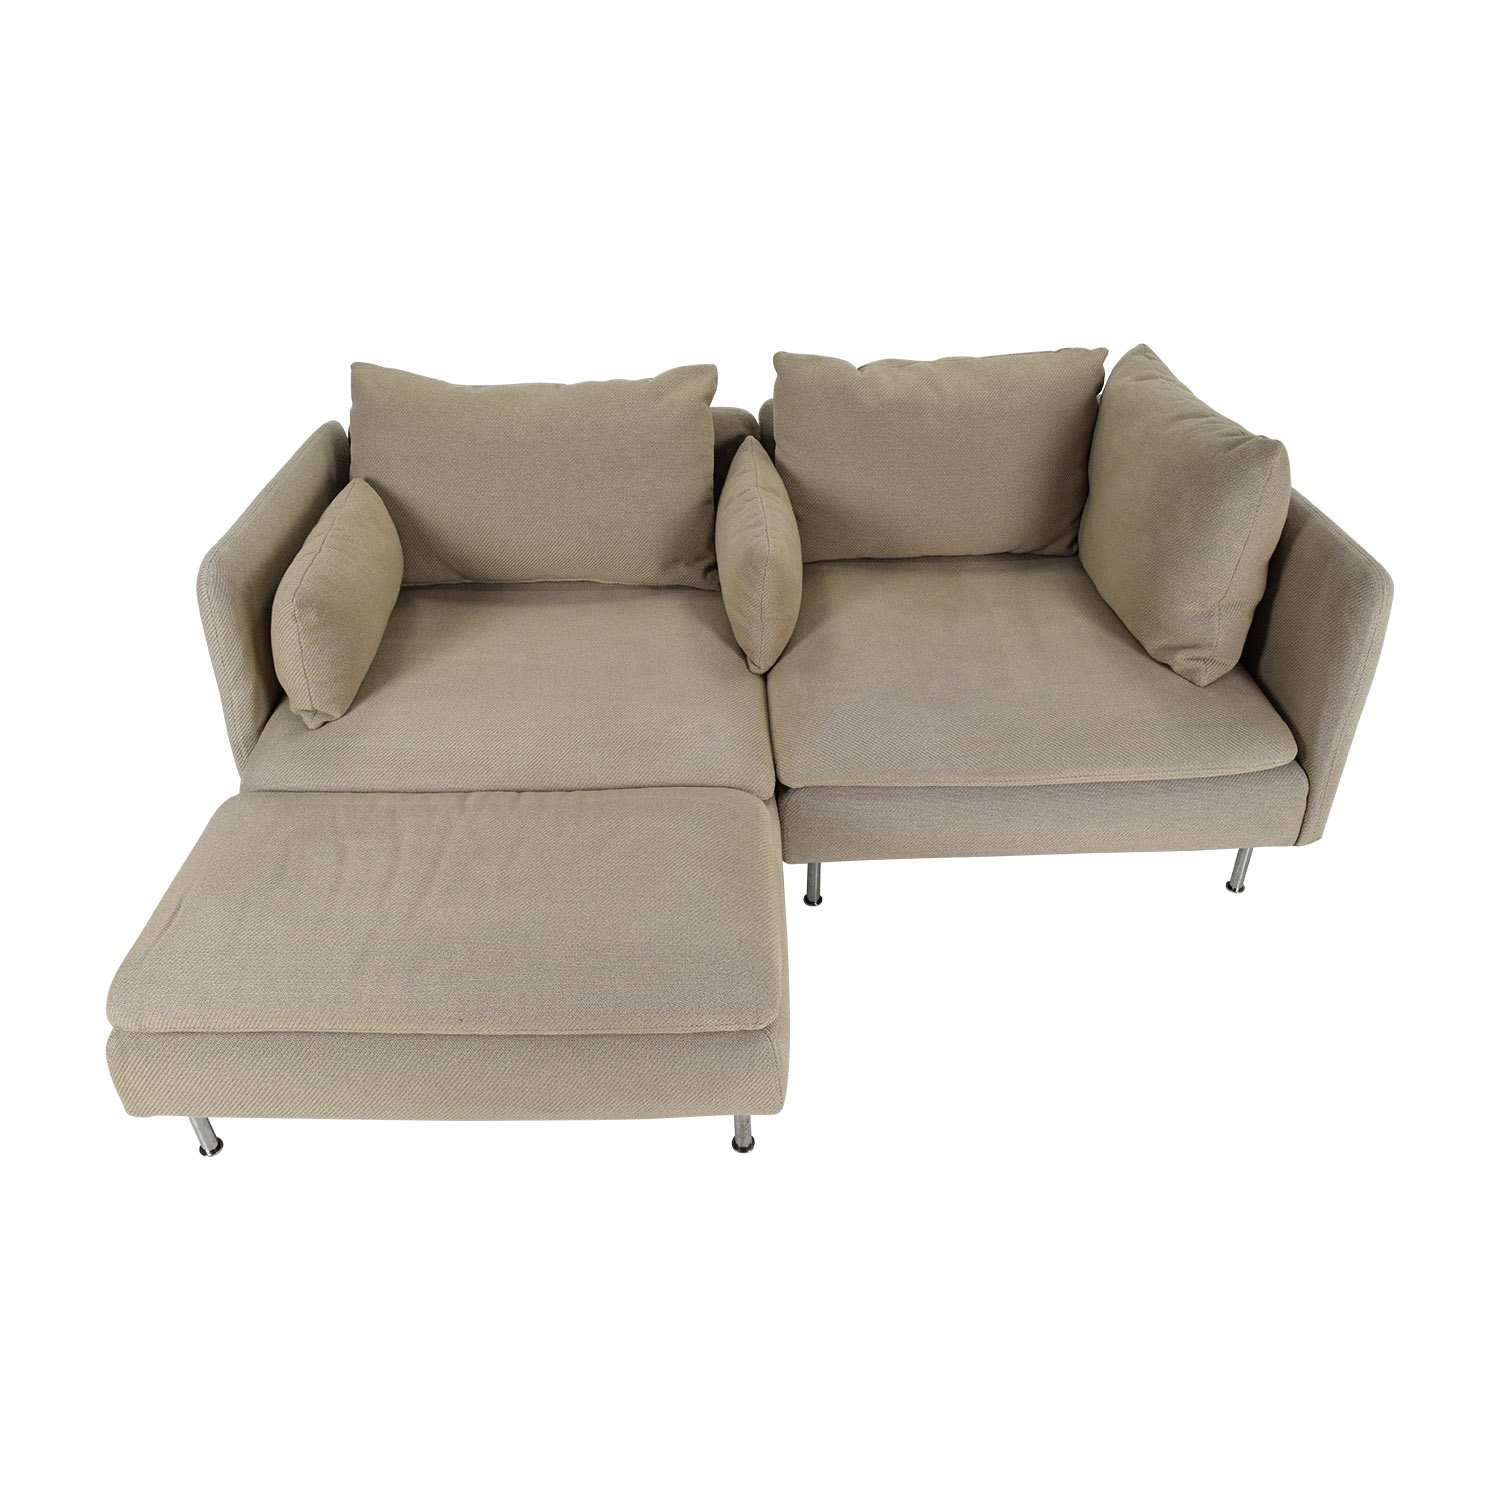 50 off ikea soderhamn sectional sofa sofas for Sectional furniture